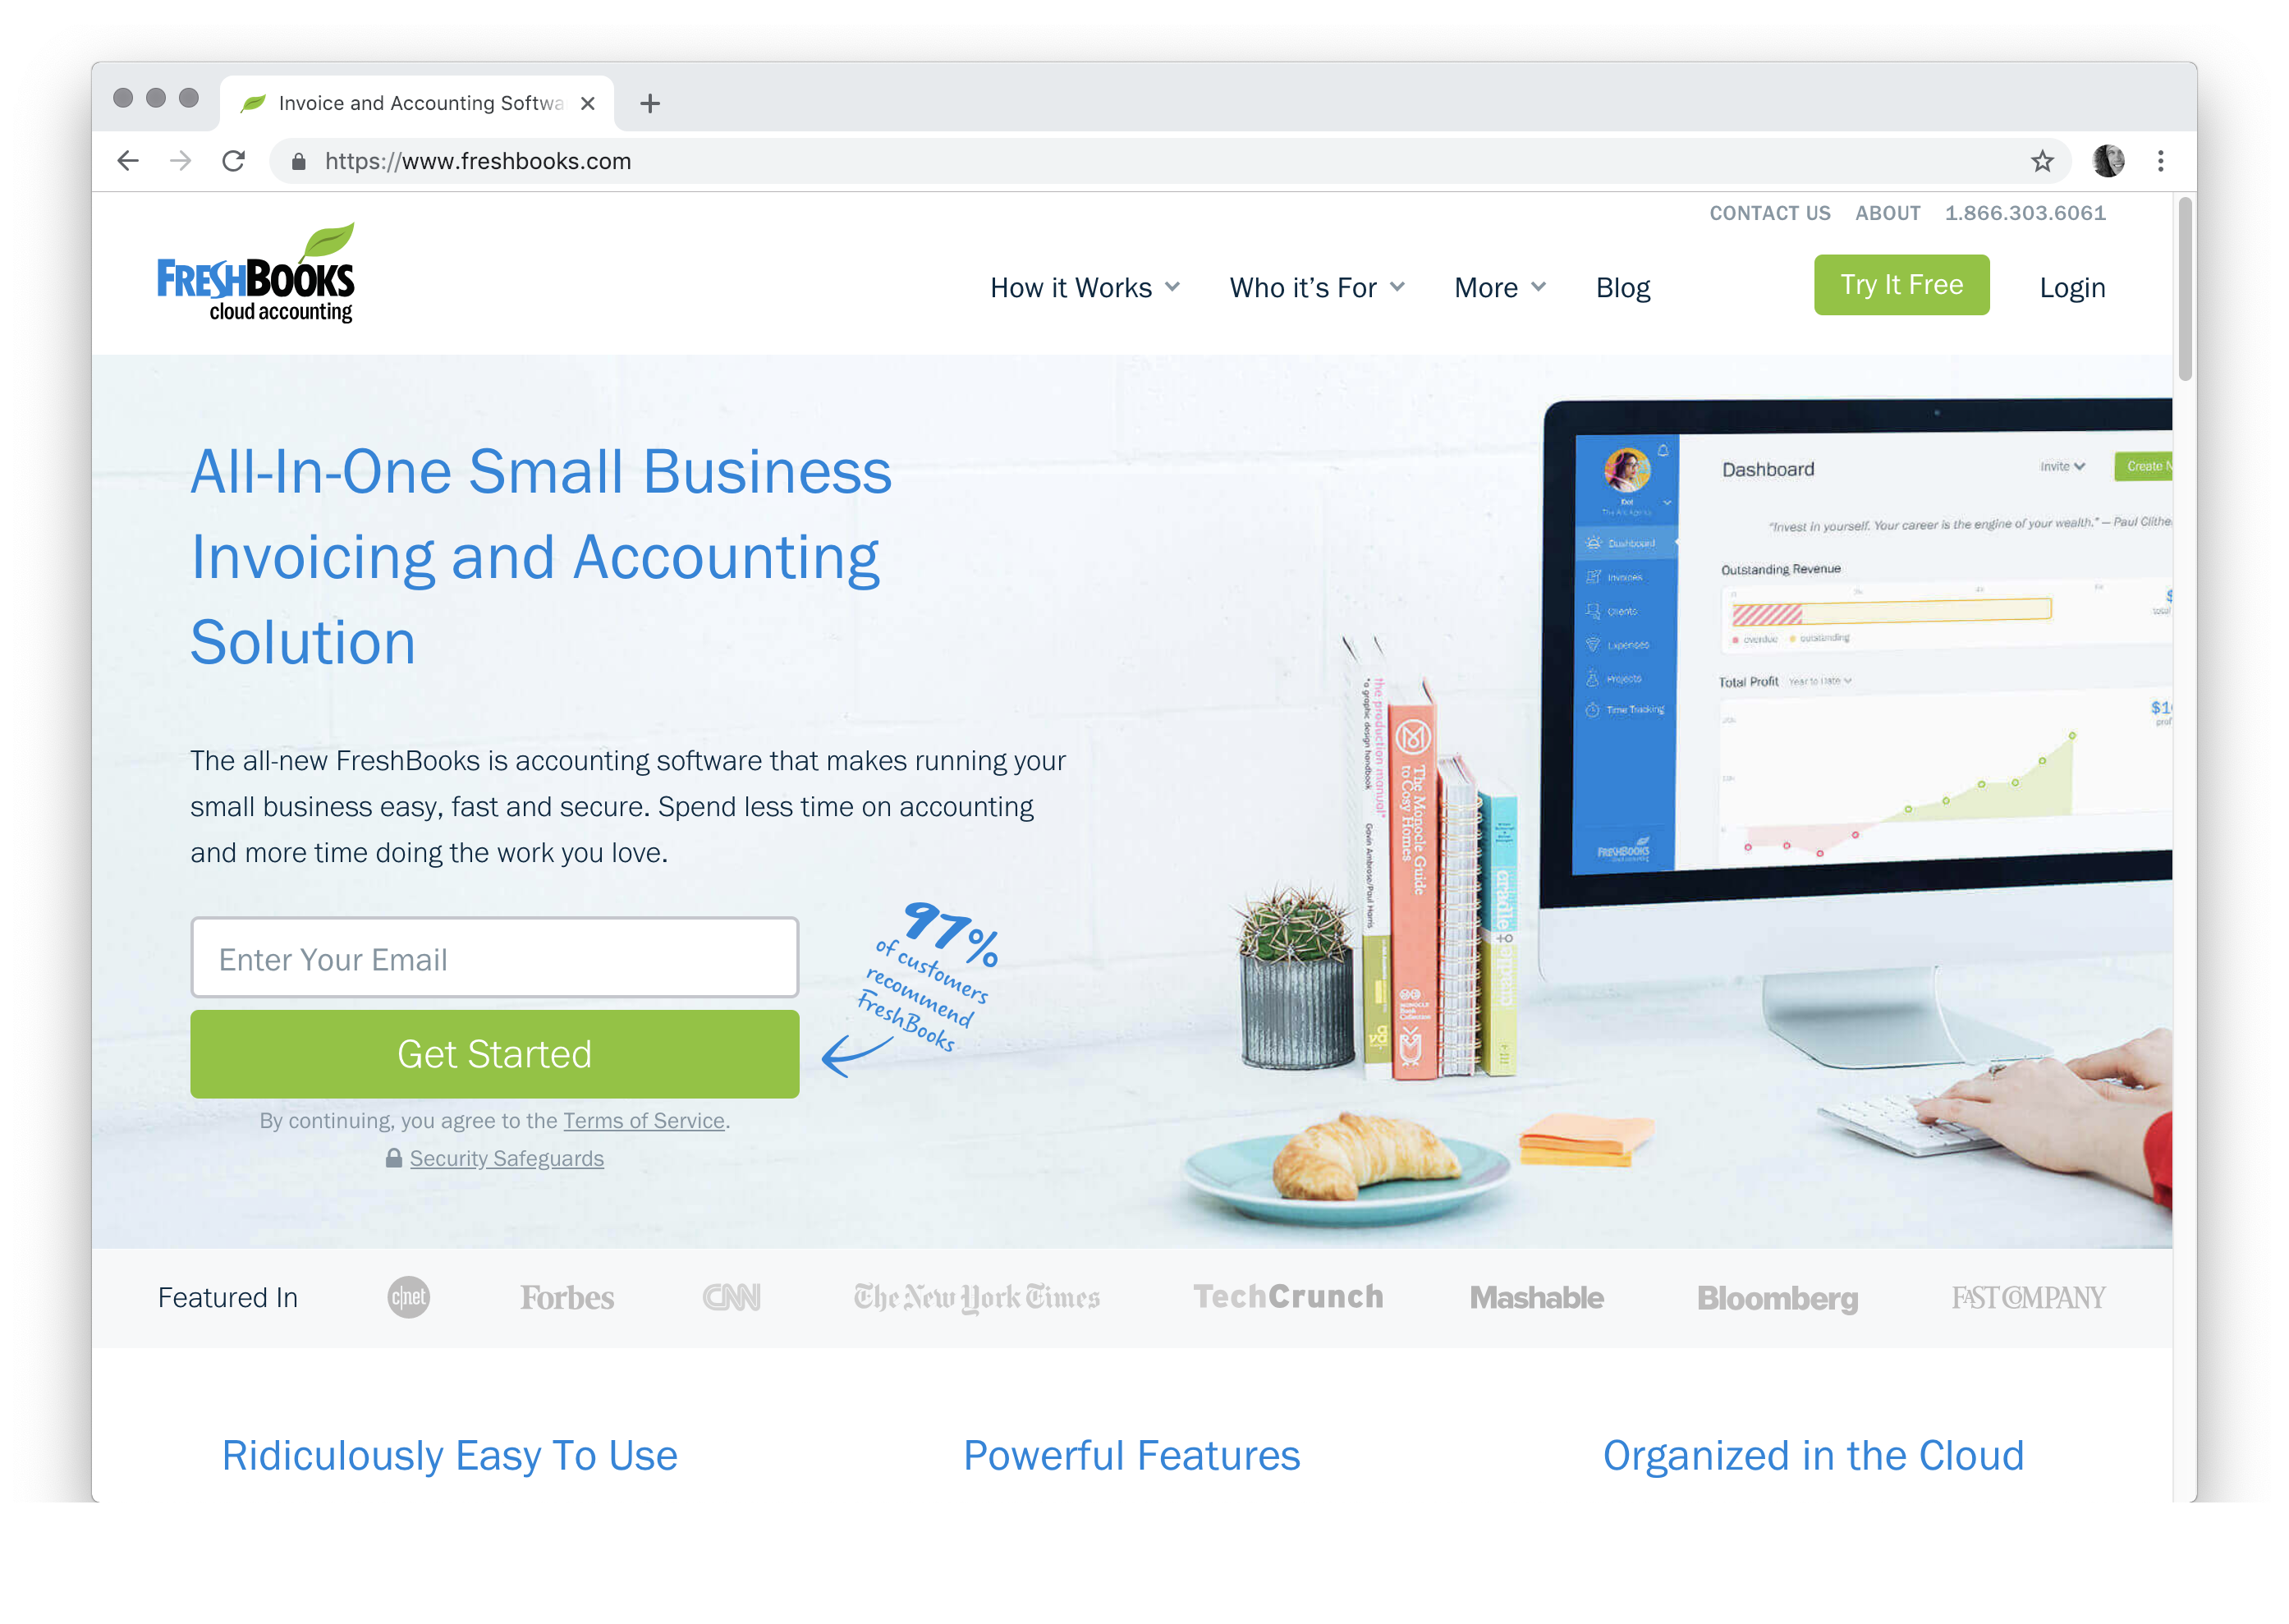 All-In-One Small Business Invoicing and Accounting Solution The all-new FreshBooks is accounting software that makes running your small business easy, fast and secure. Spend less time on accounting and more time doing the work you love.